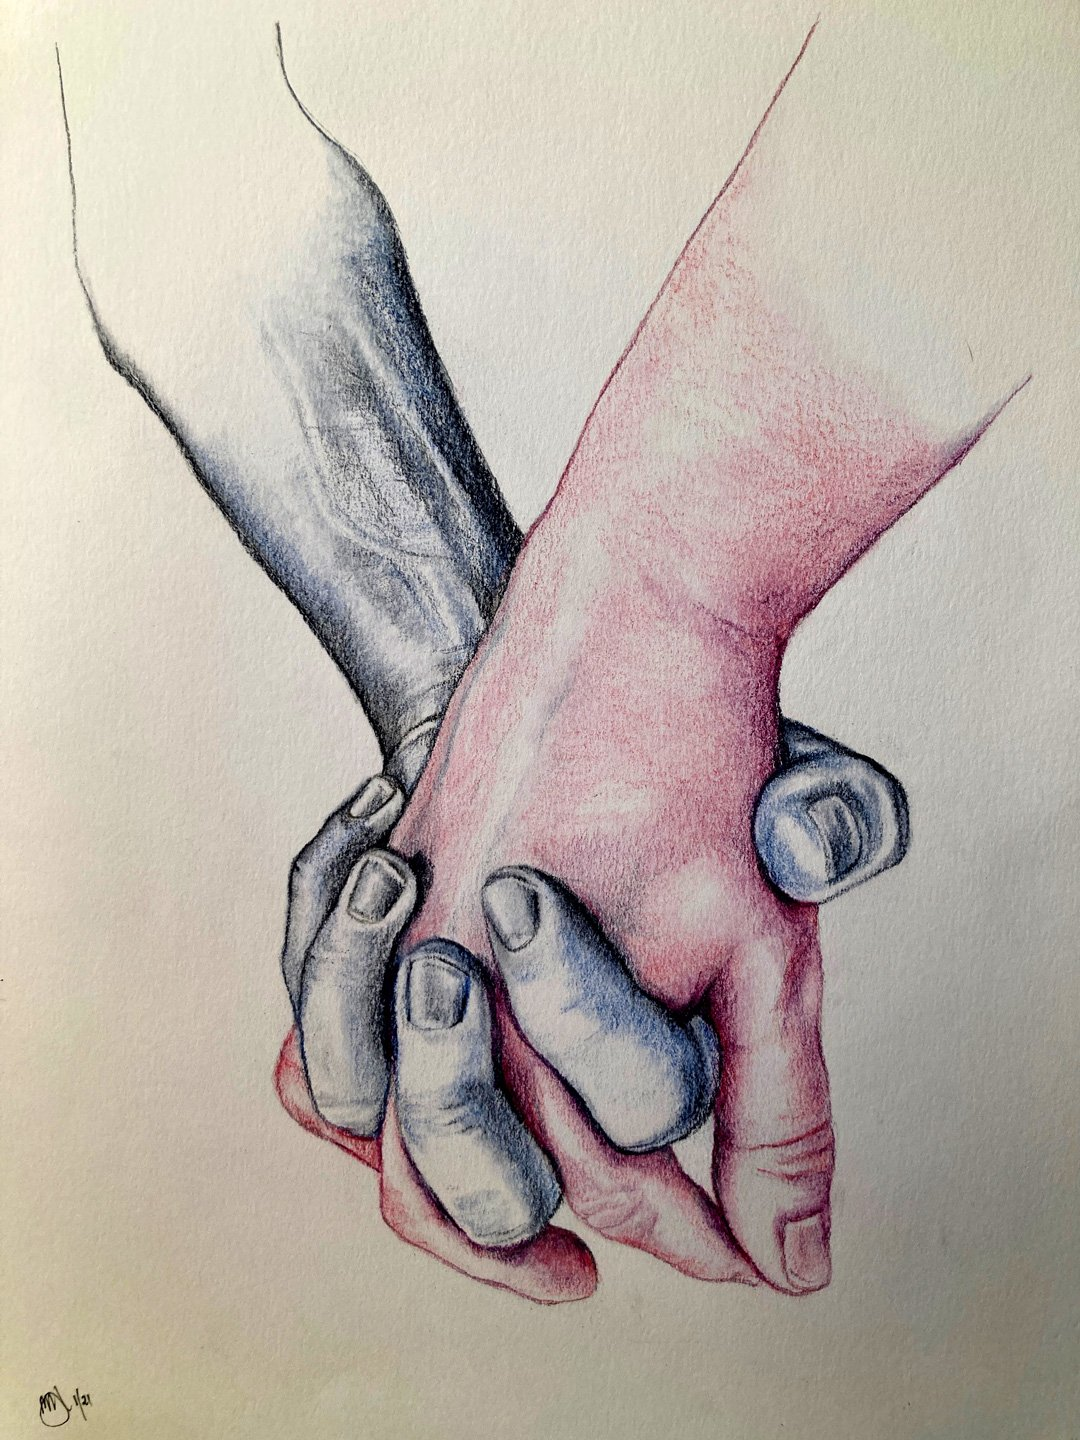 Mauree Domaschenzn | 2021 | Two hands | Pencil on paper | 40x30cm